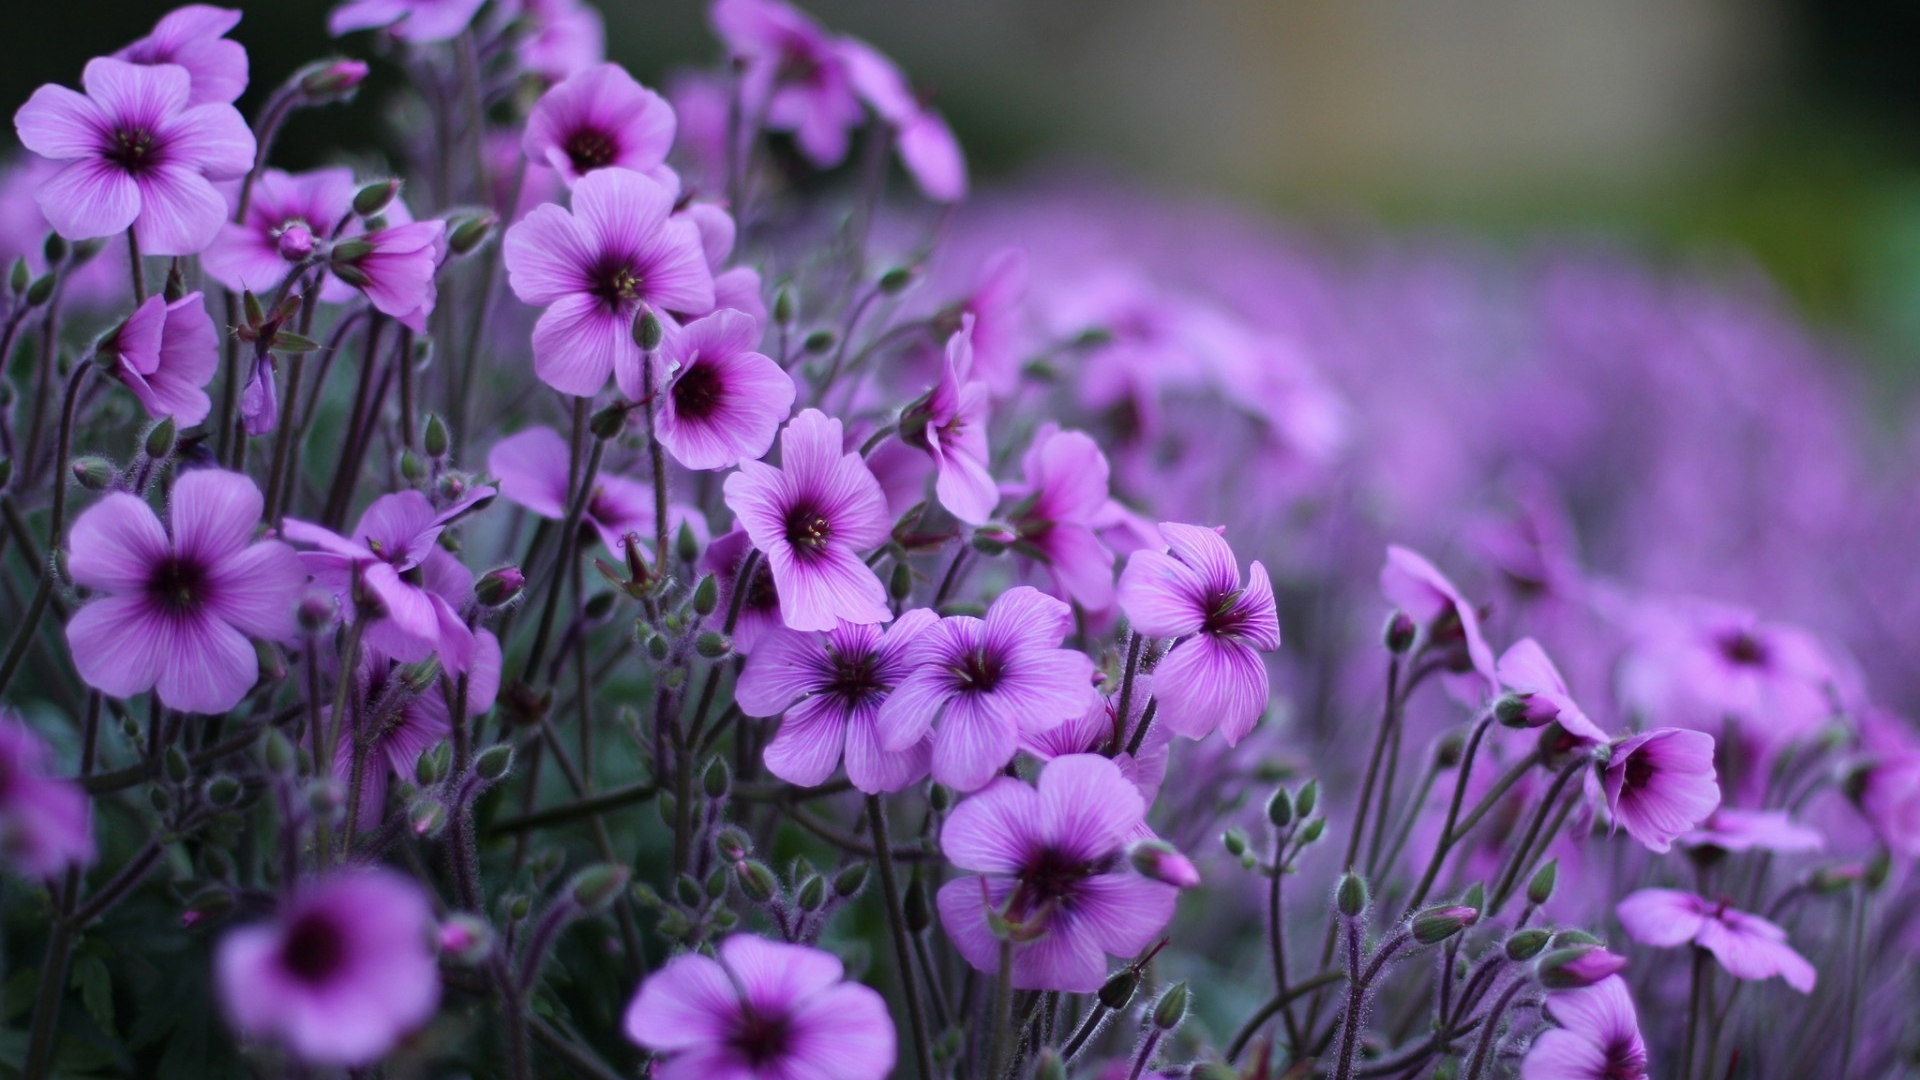 Home Flowers Most Beautiful Purple Flowers For Desktop - Desktop Most Beautiful Flowers , HD Wallpaper & Backgrounds